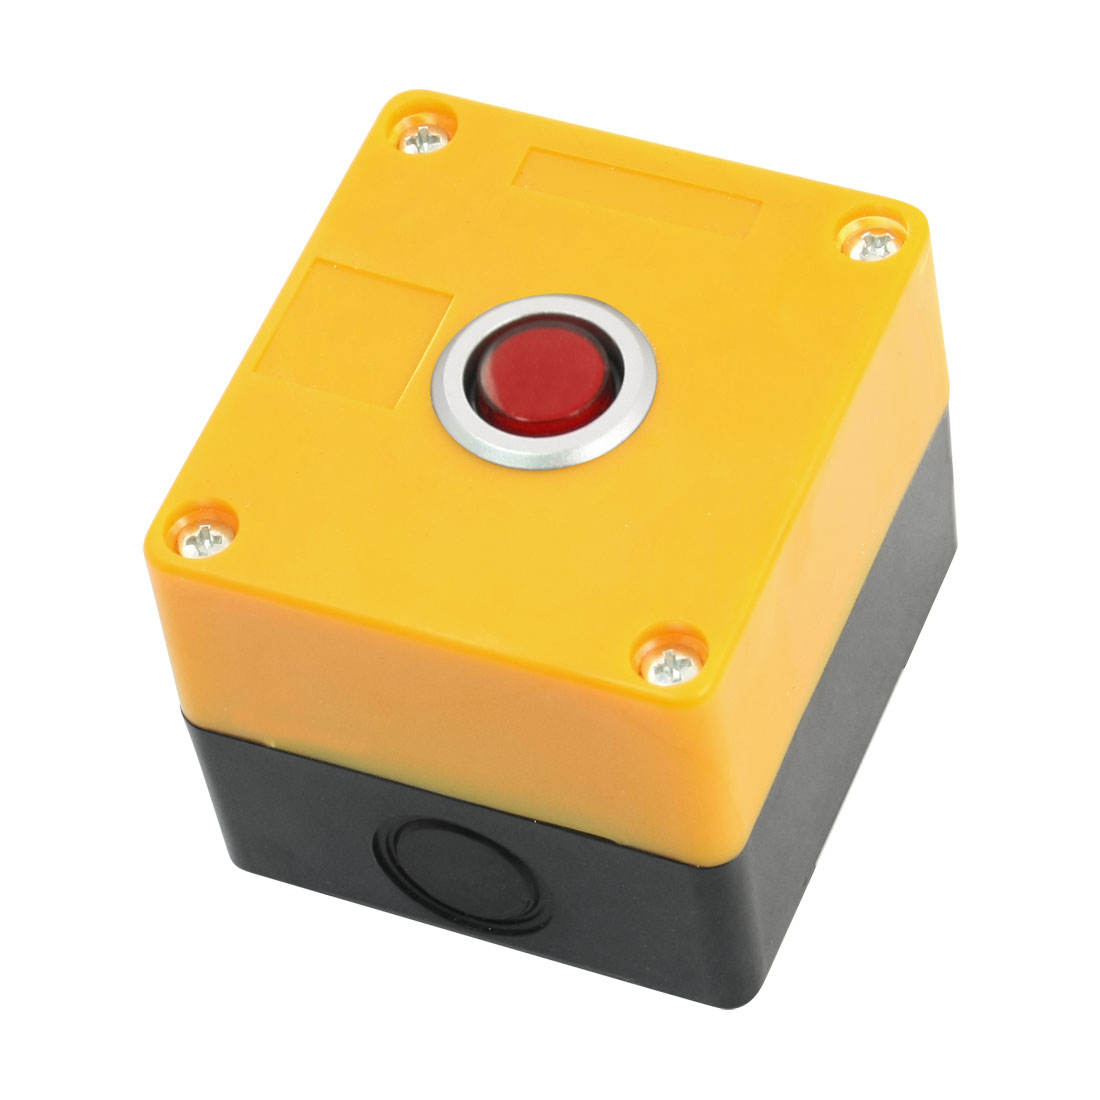 12V Yellow Plastic Case Red Accident Signal Indicator Light Pilot Lamp Control Station Box